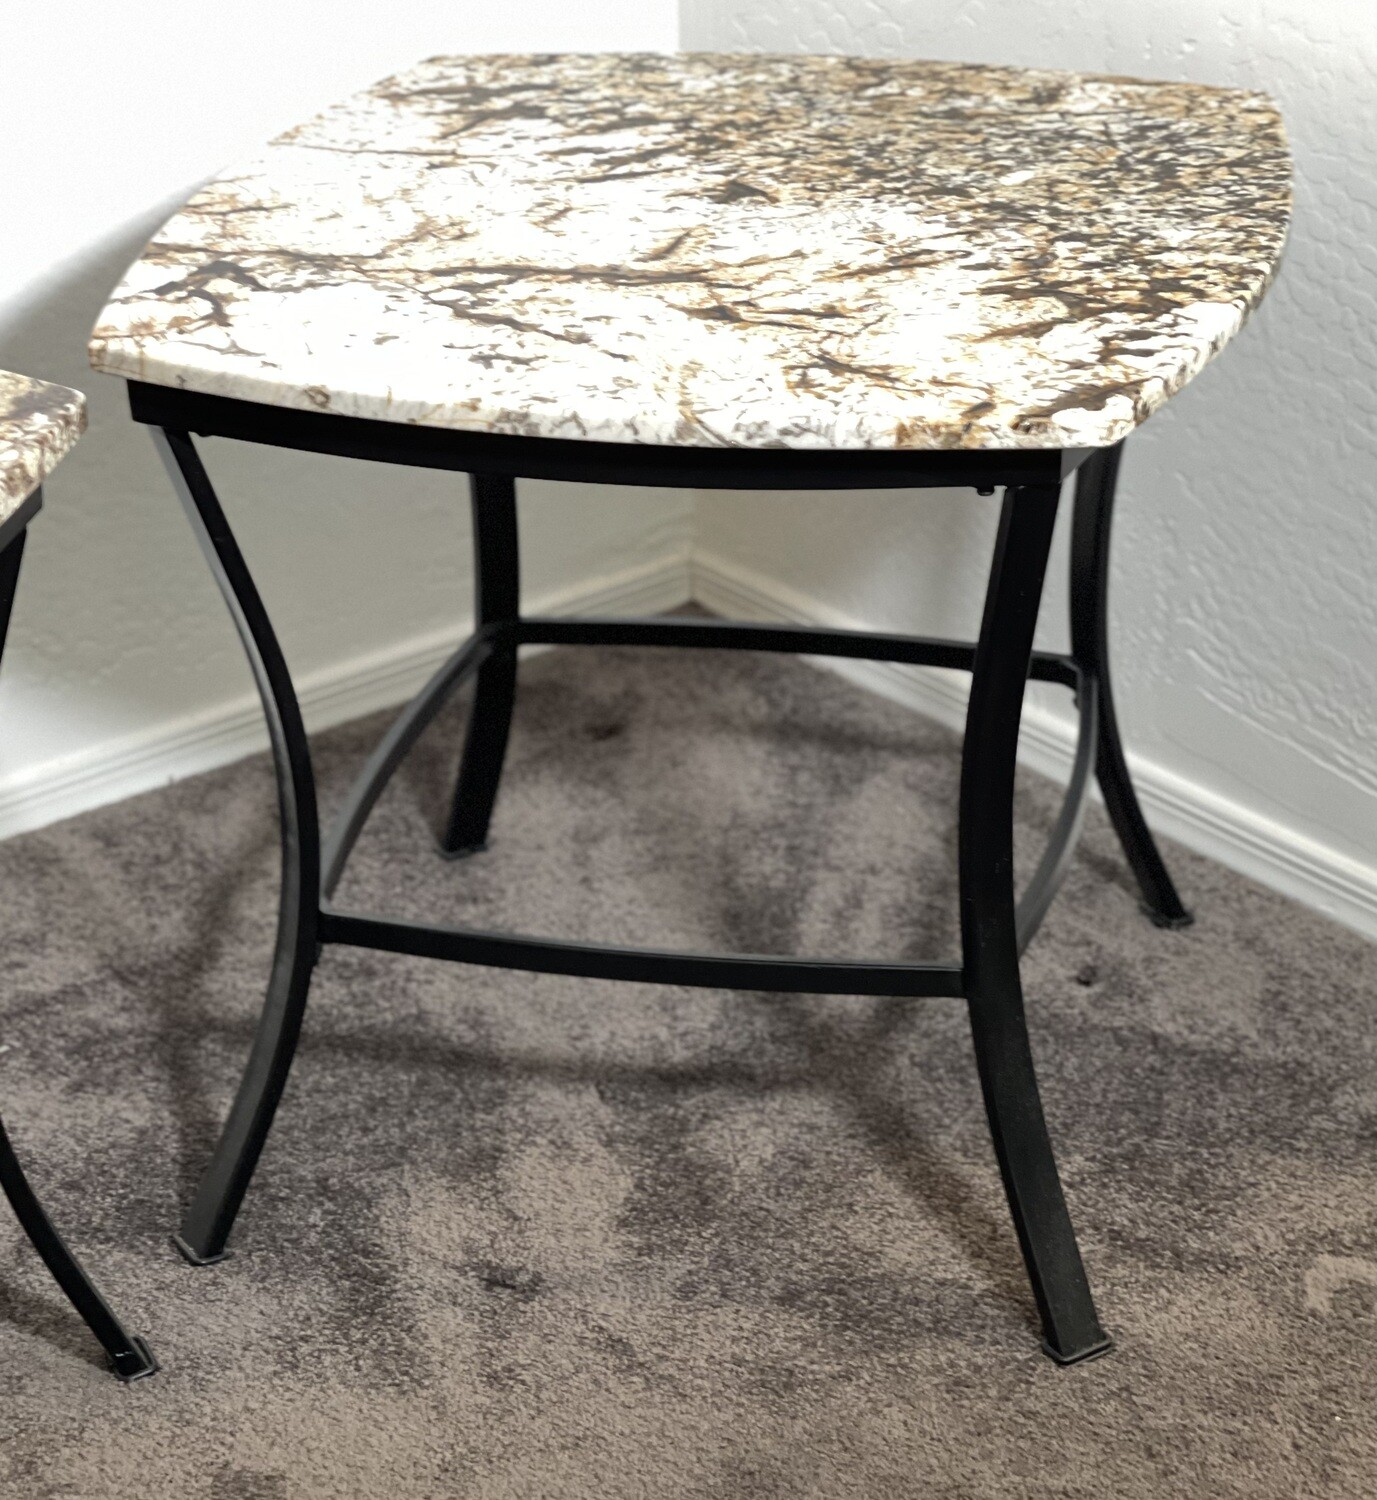 #2 Granite Top Iron Frame End Table